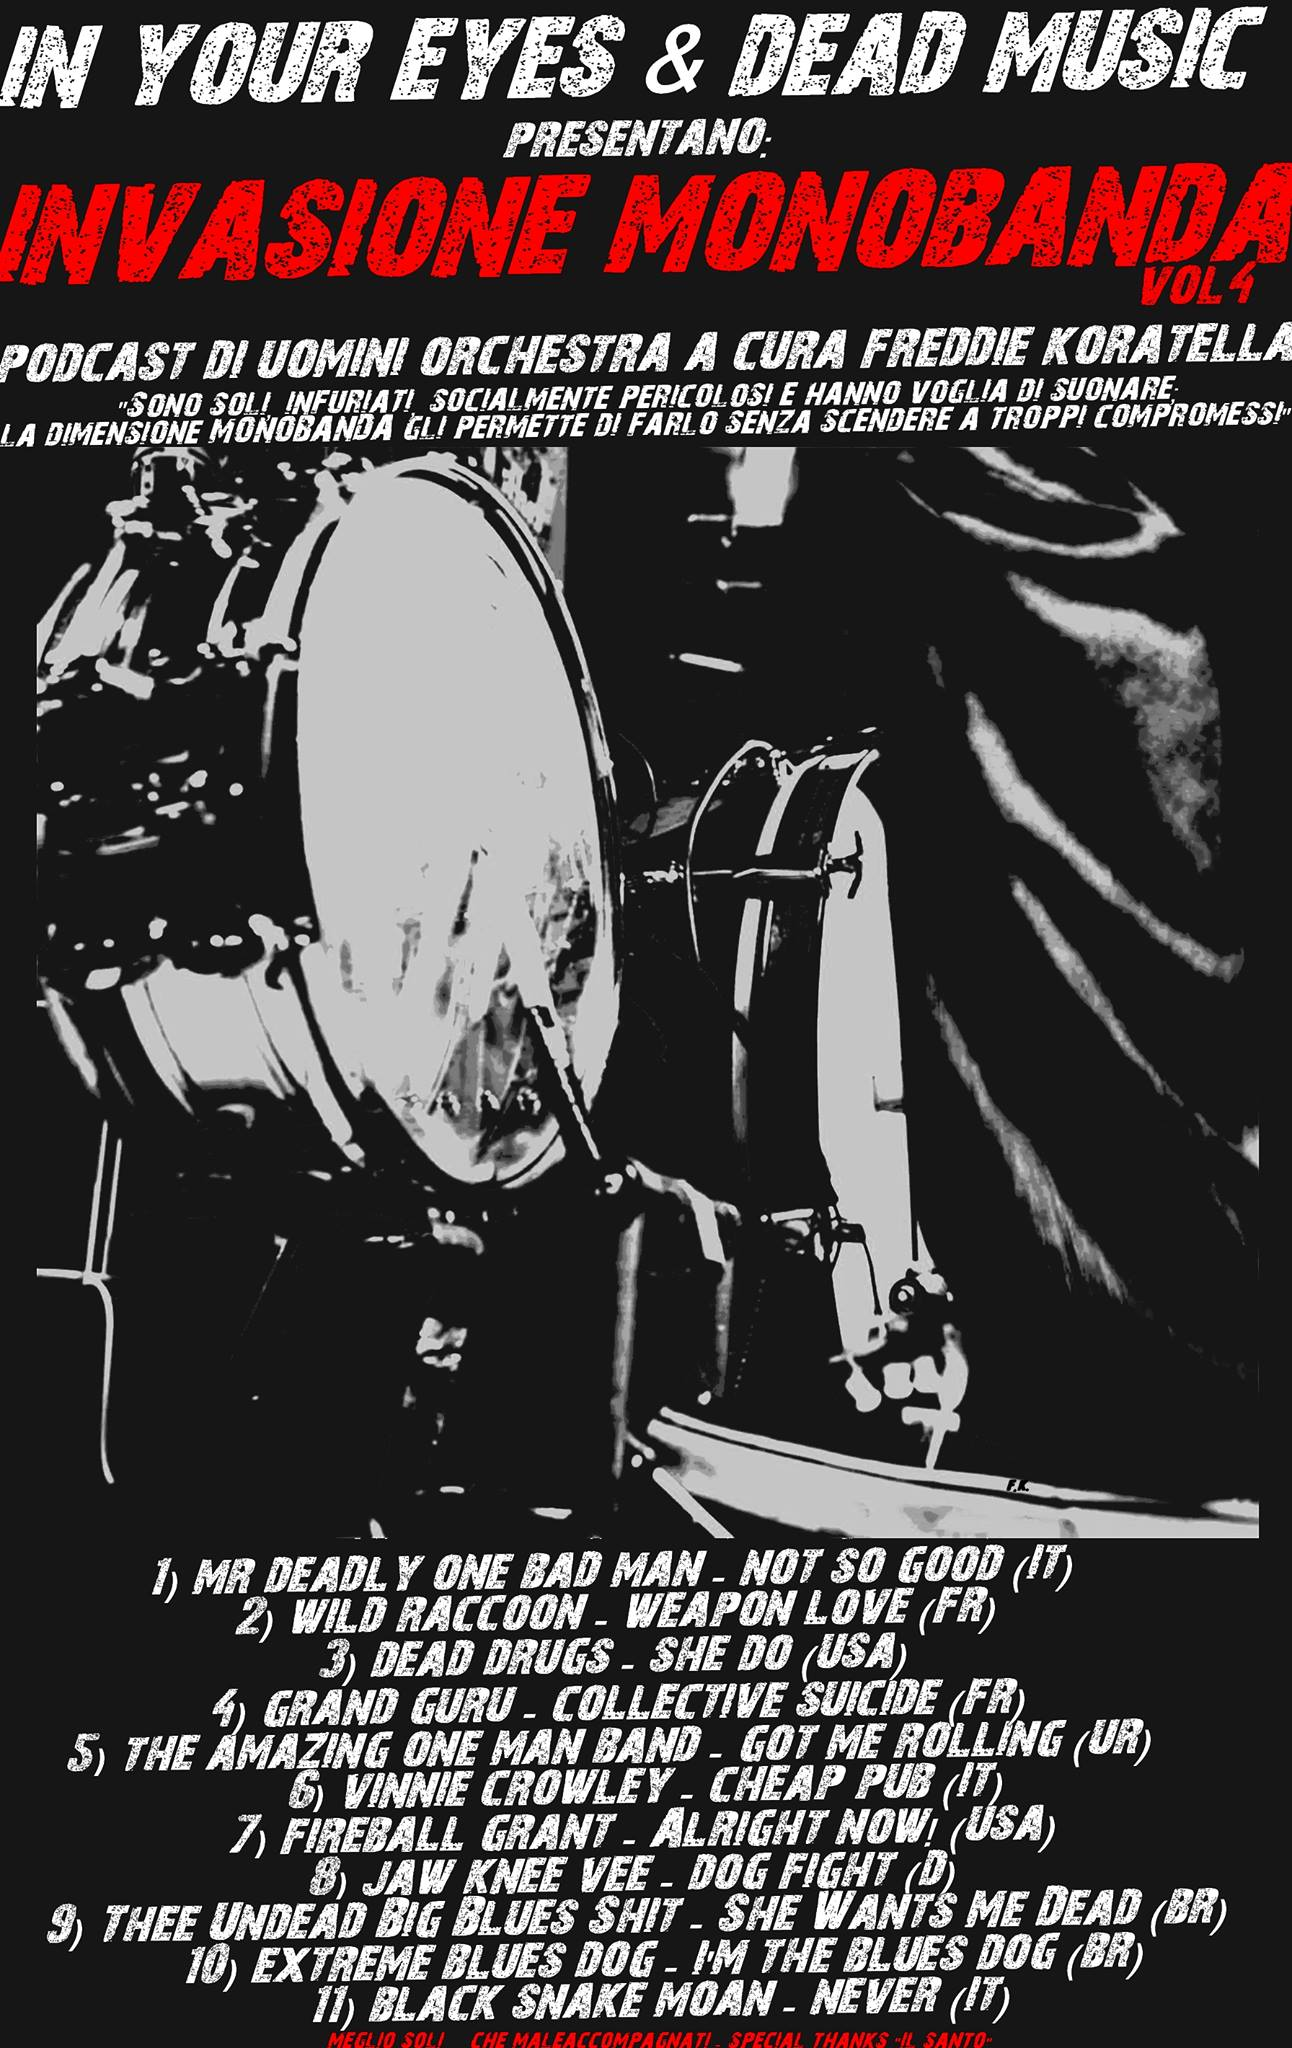 Invasione Monoband vol.4 1 - fanzine